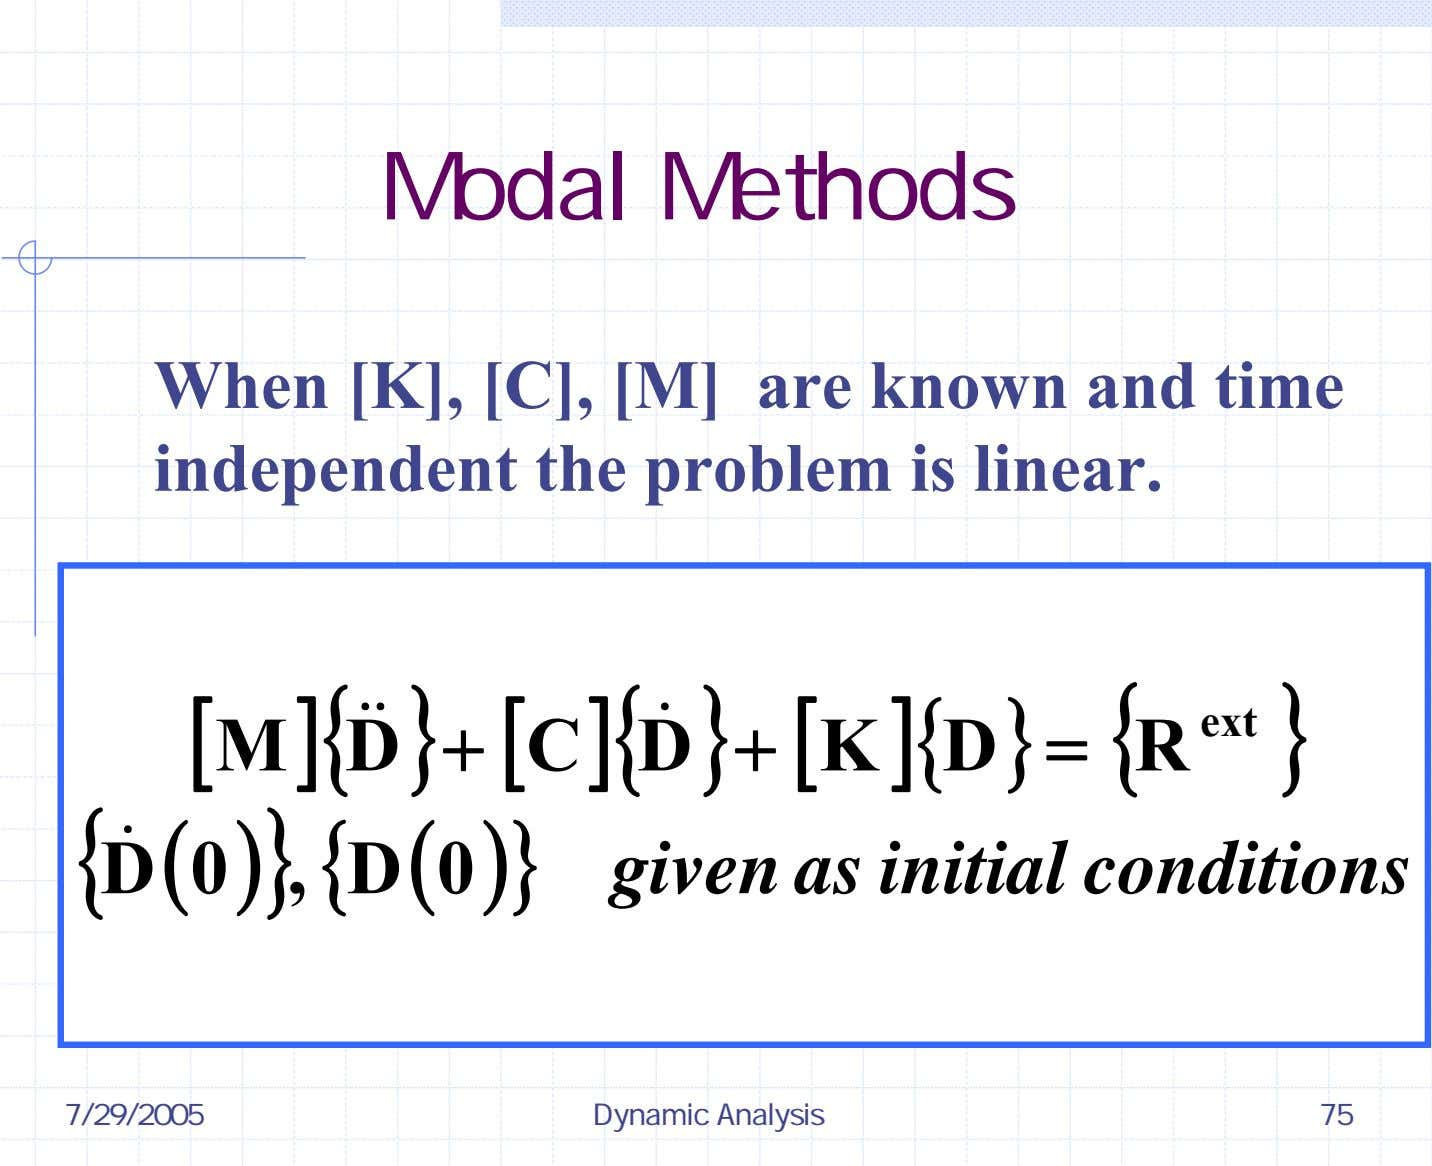 Modal Methods When [K], [C], [M] are known and time independent the problem is linear.